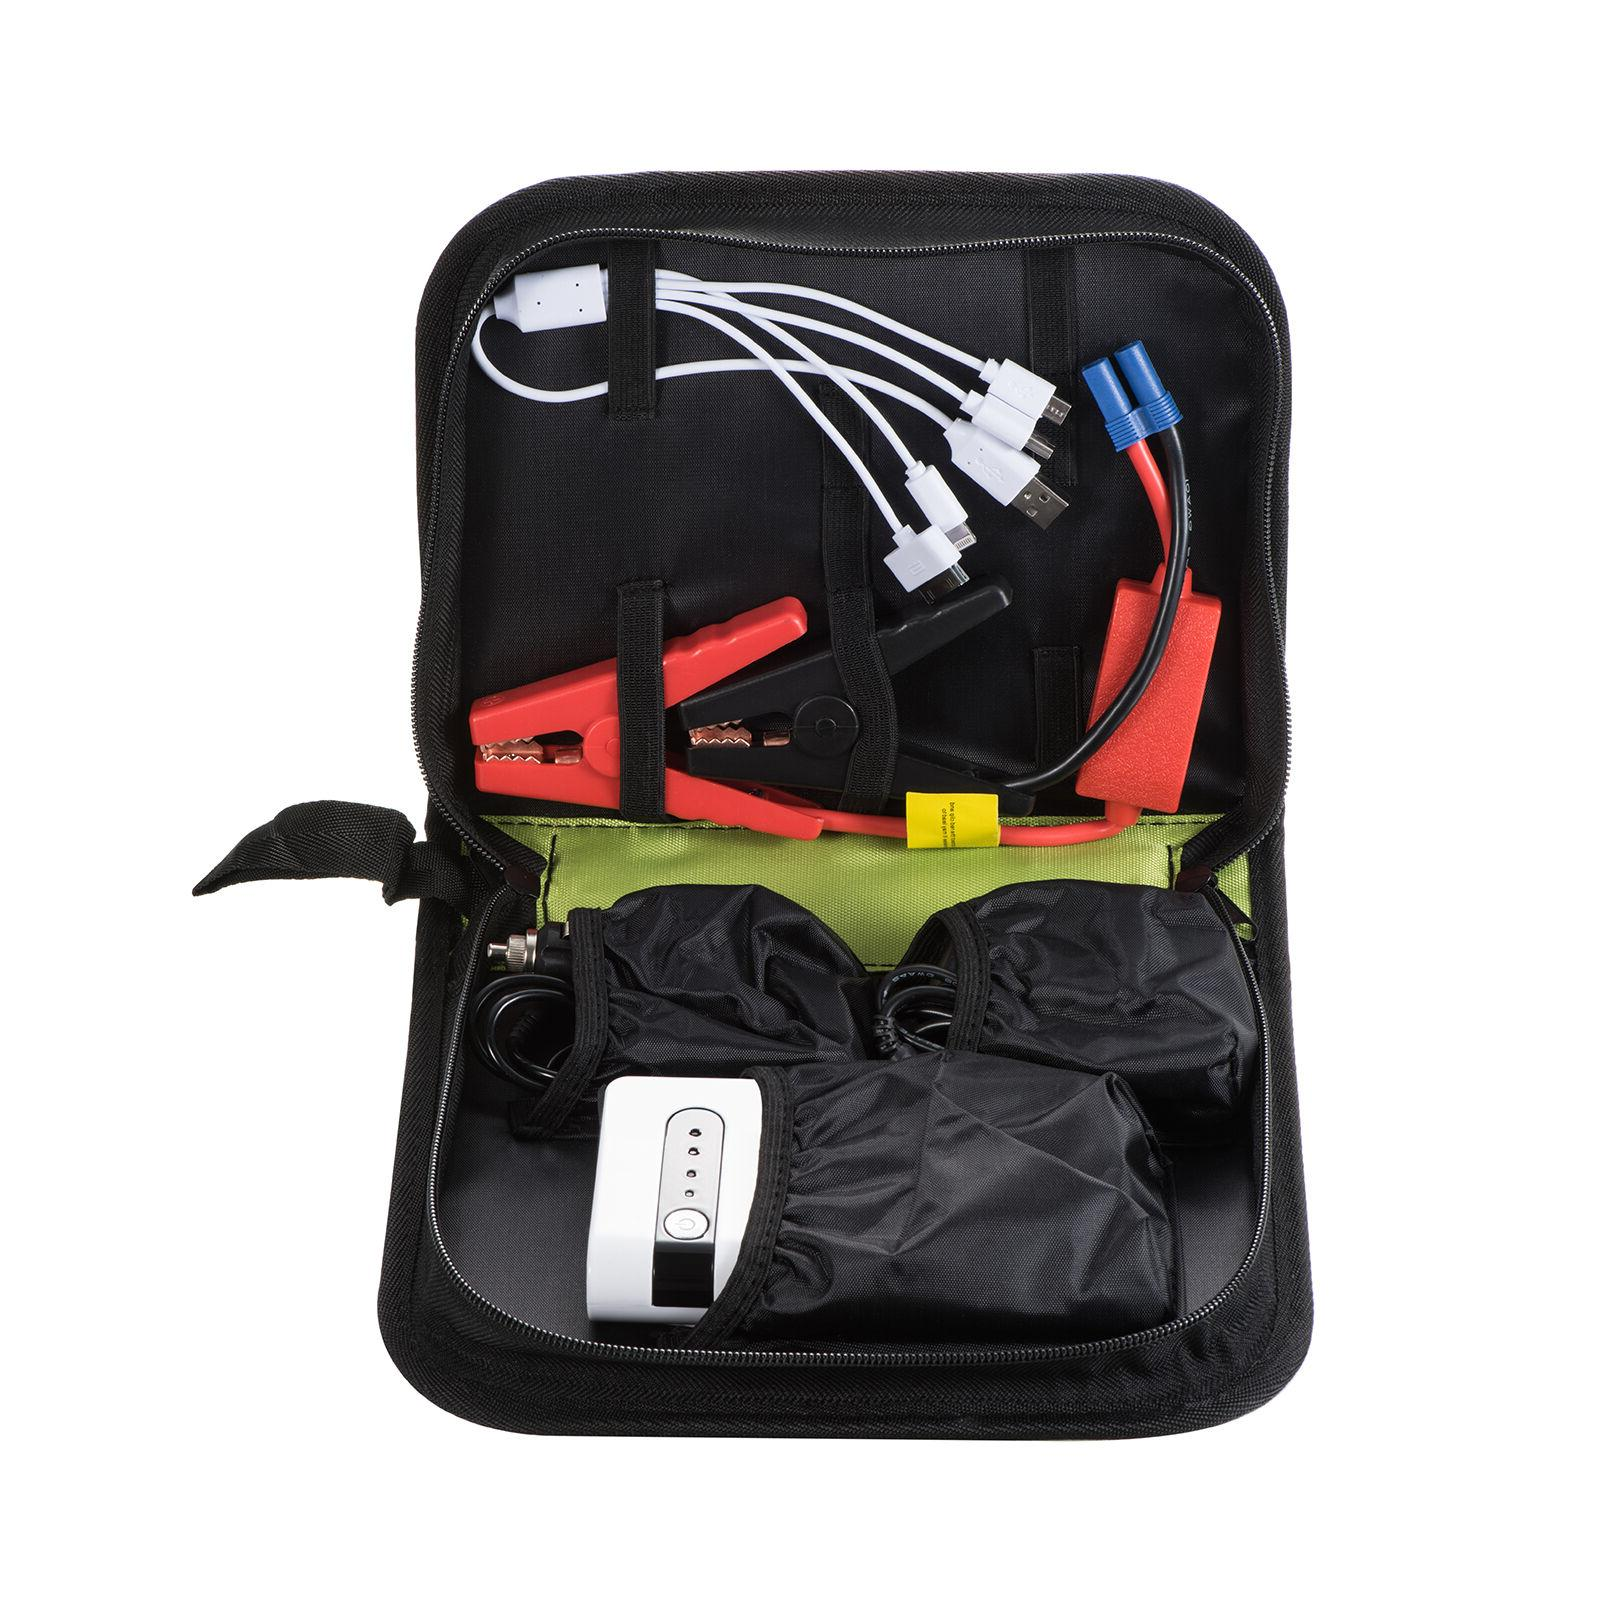 Portable Car Starter Engine Battery Charger